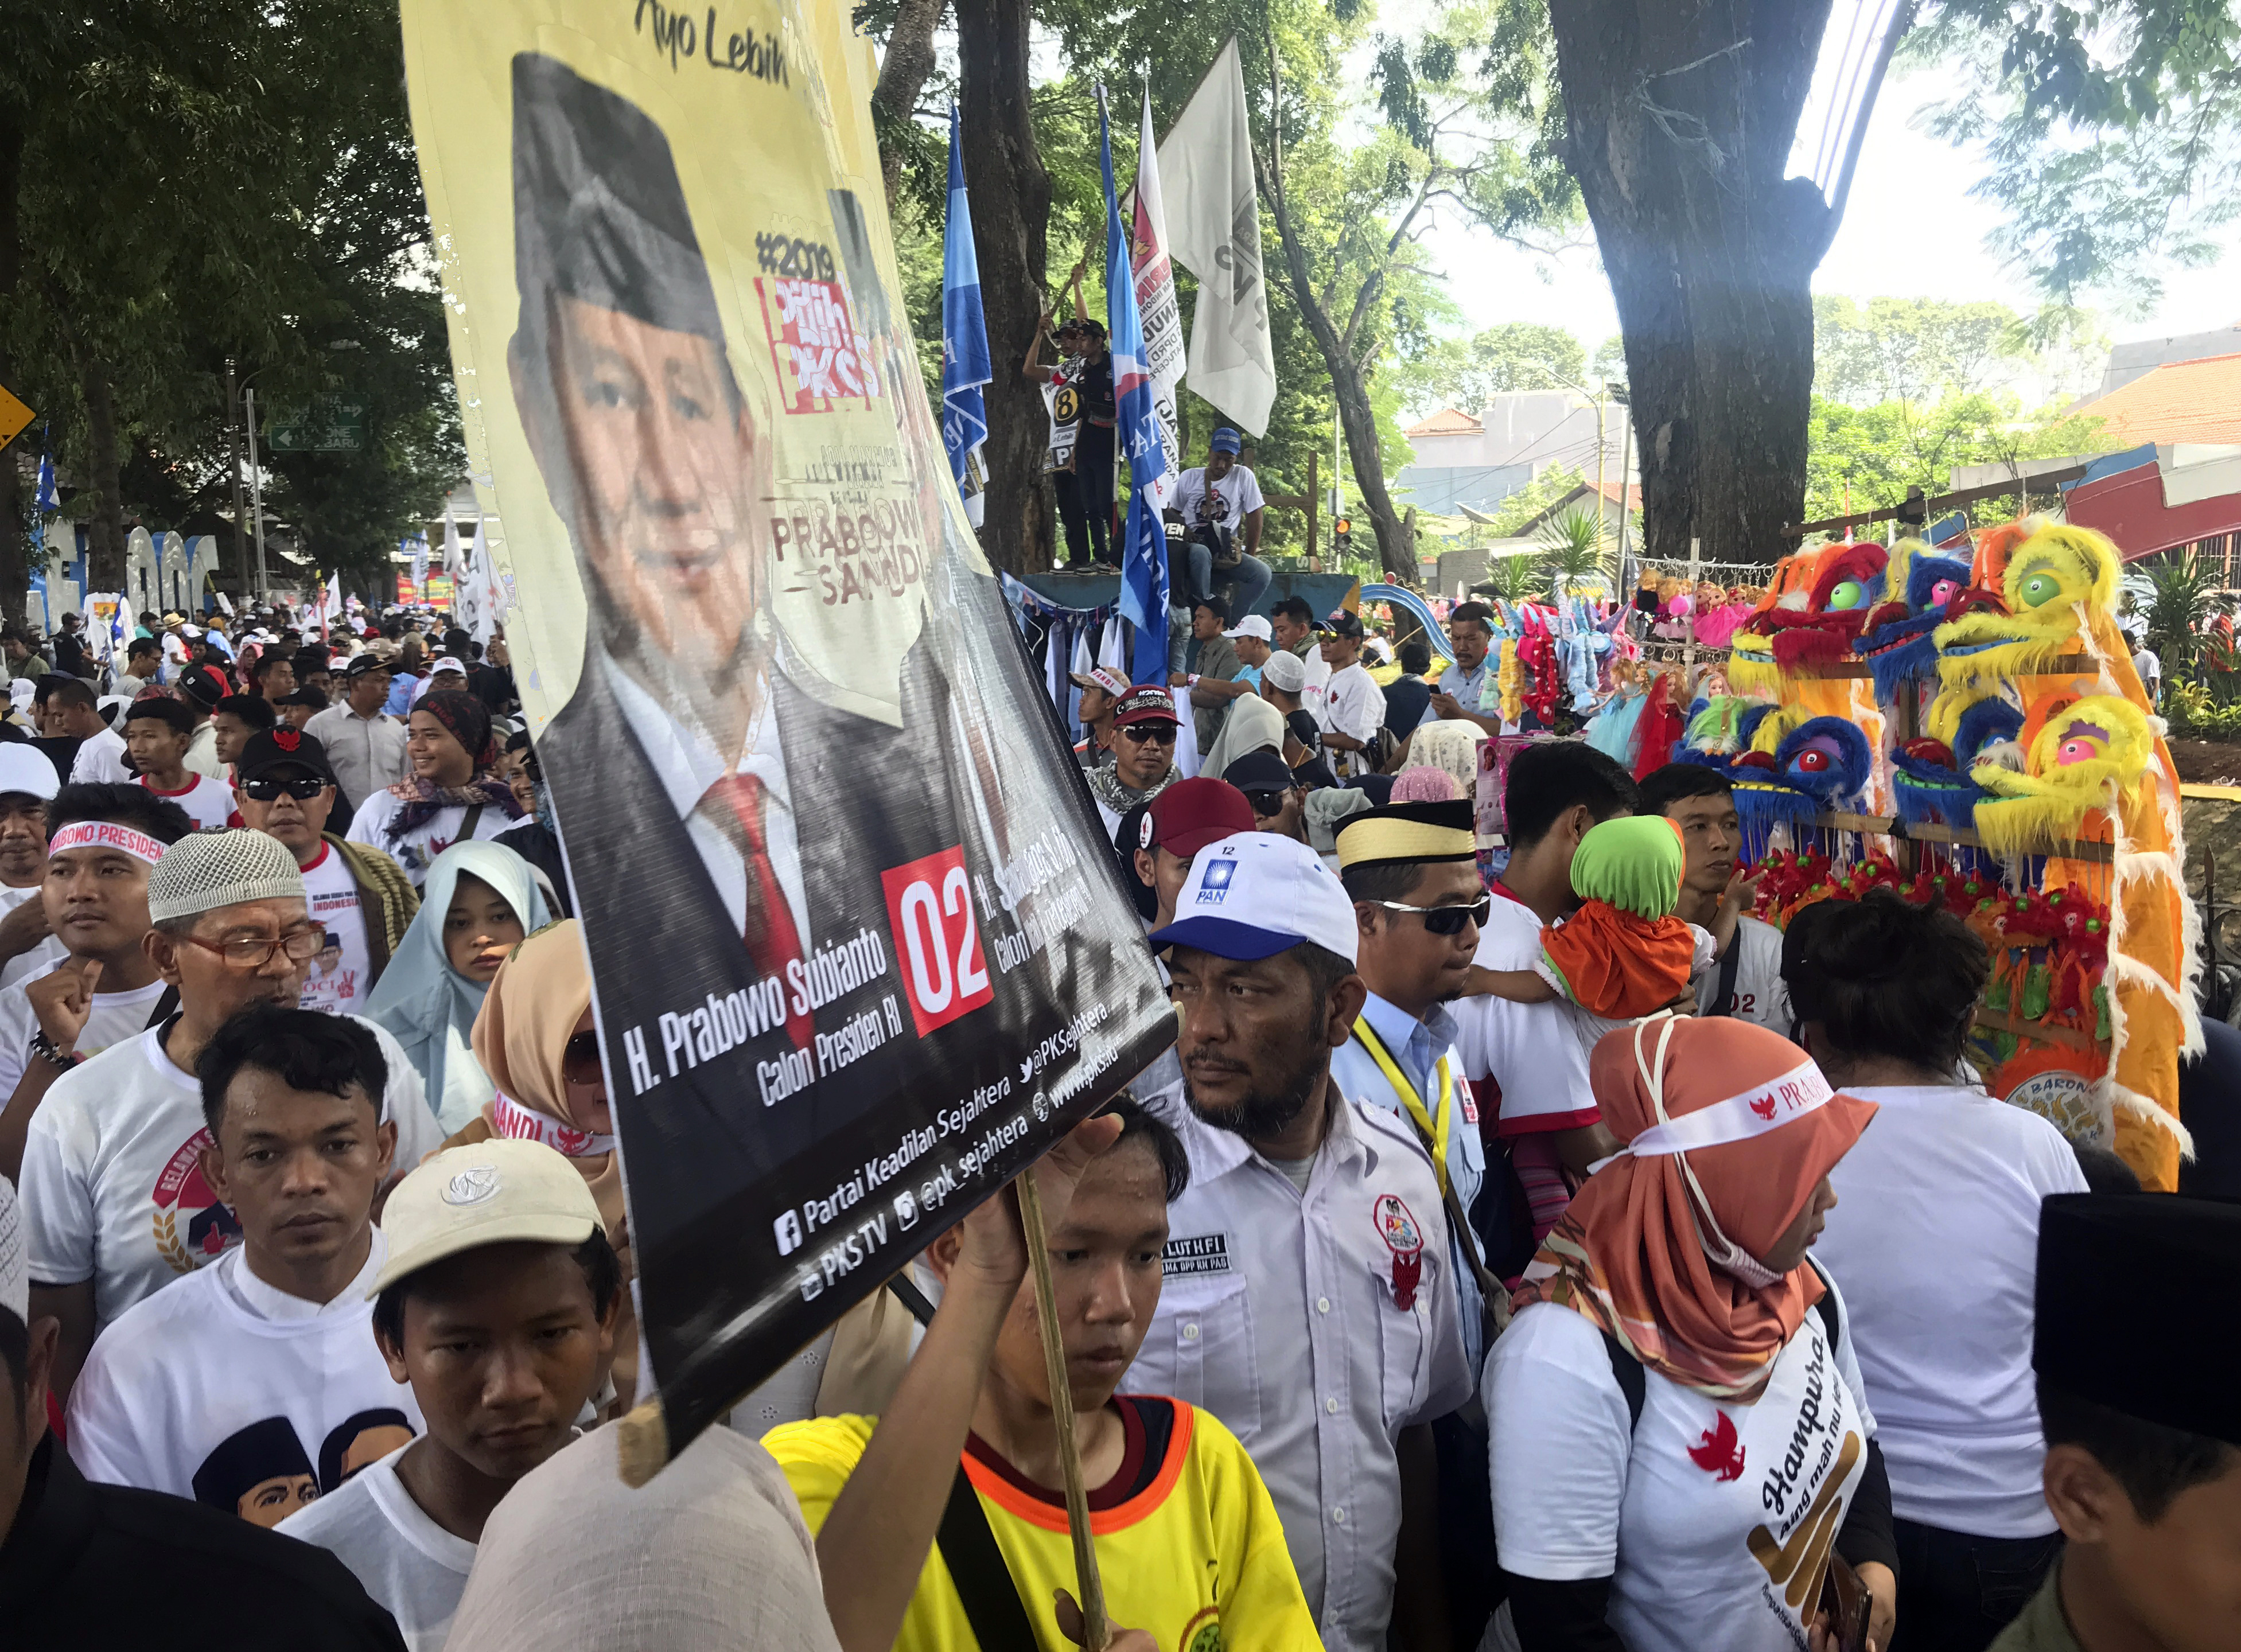 Supporters hold a banner showing support for presidential candidate Prabowo Subianto during a campaign rally in Tangerang, Indonesia, April 13, 2019.